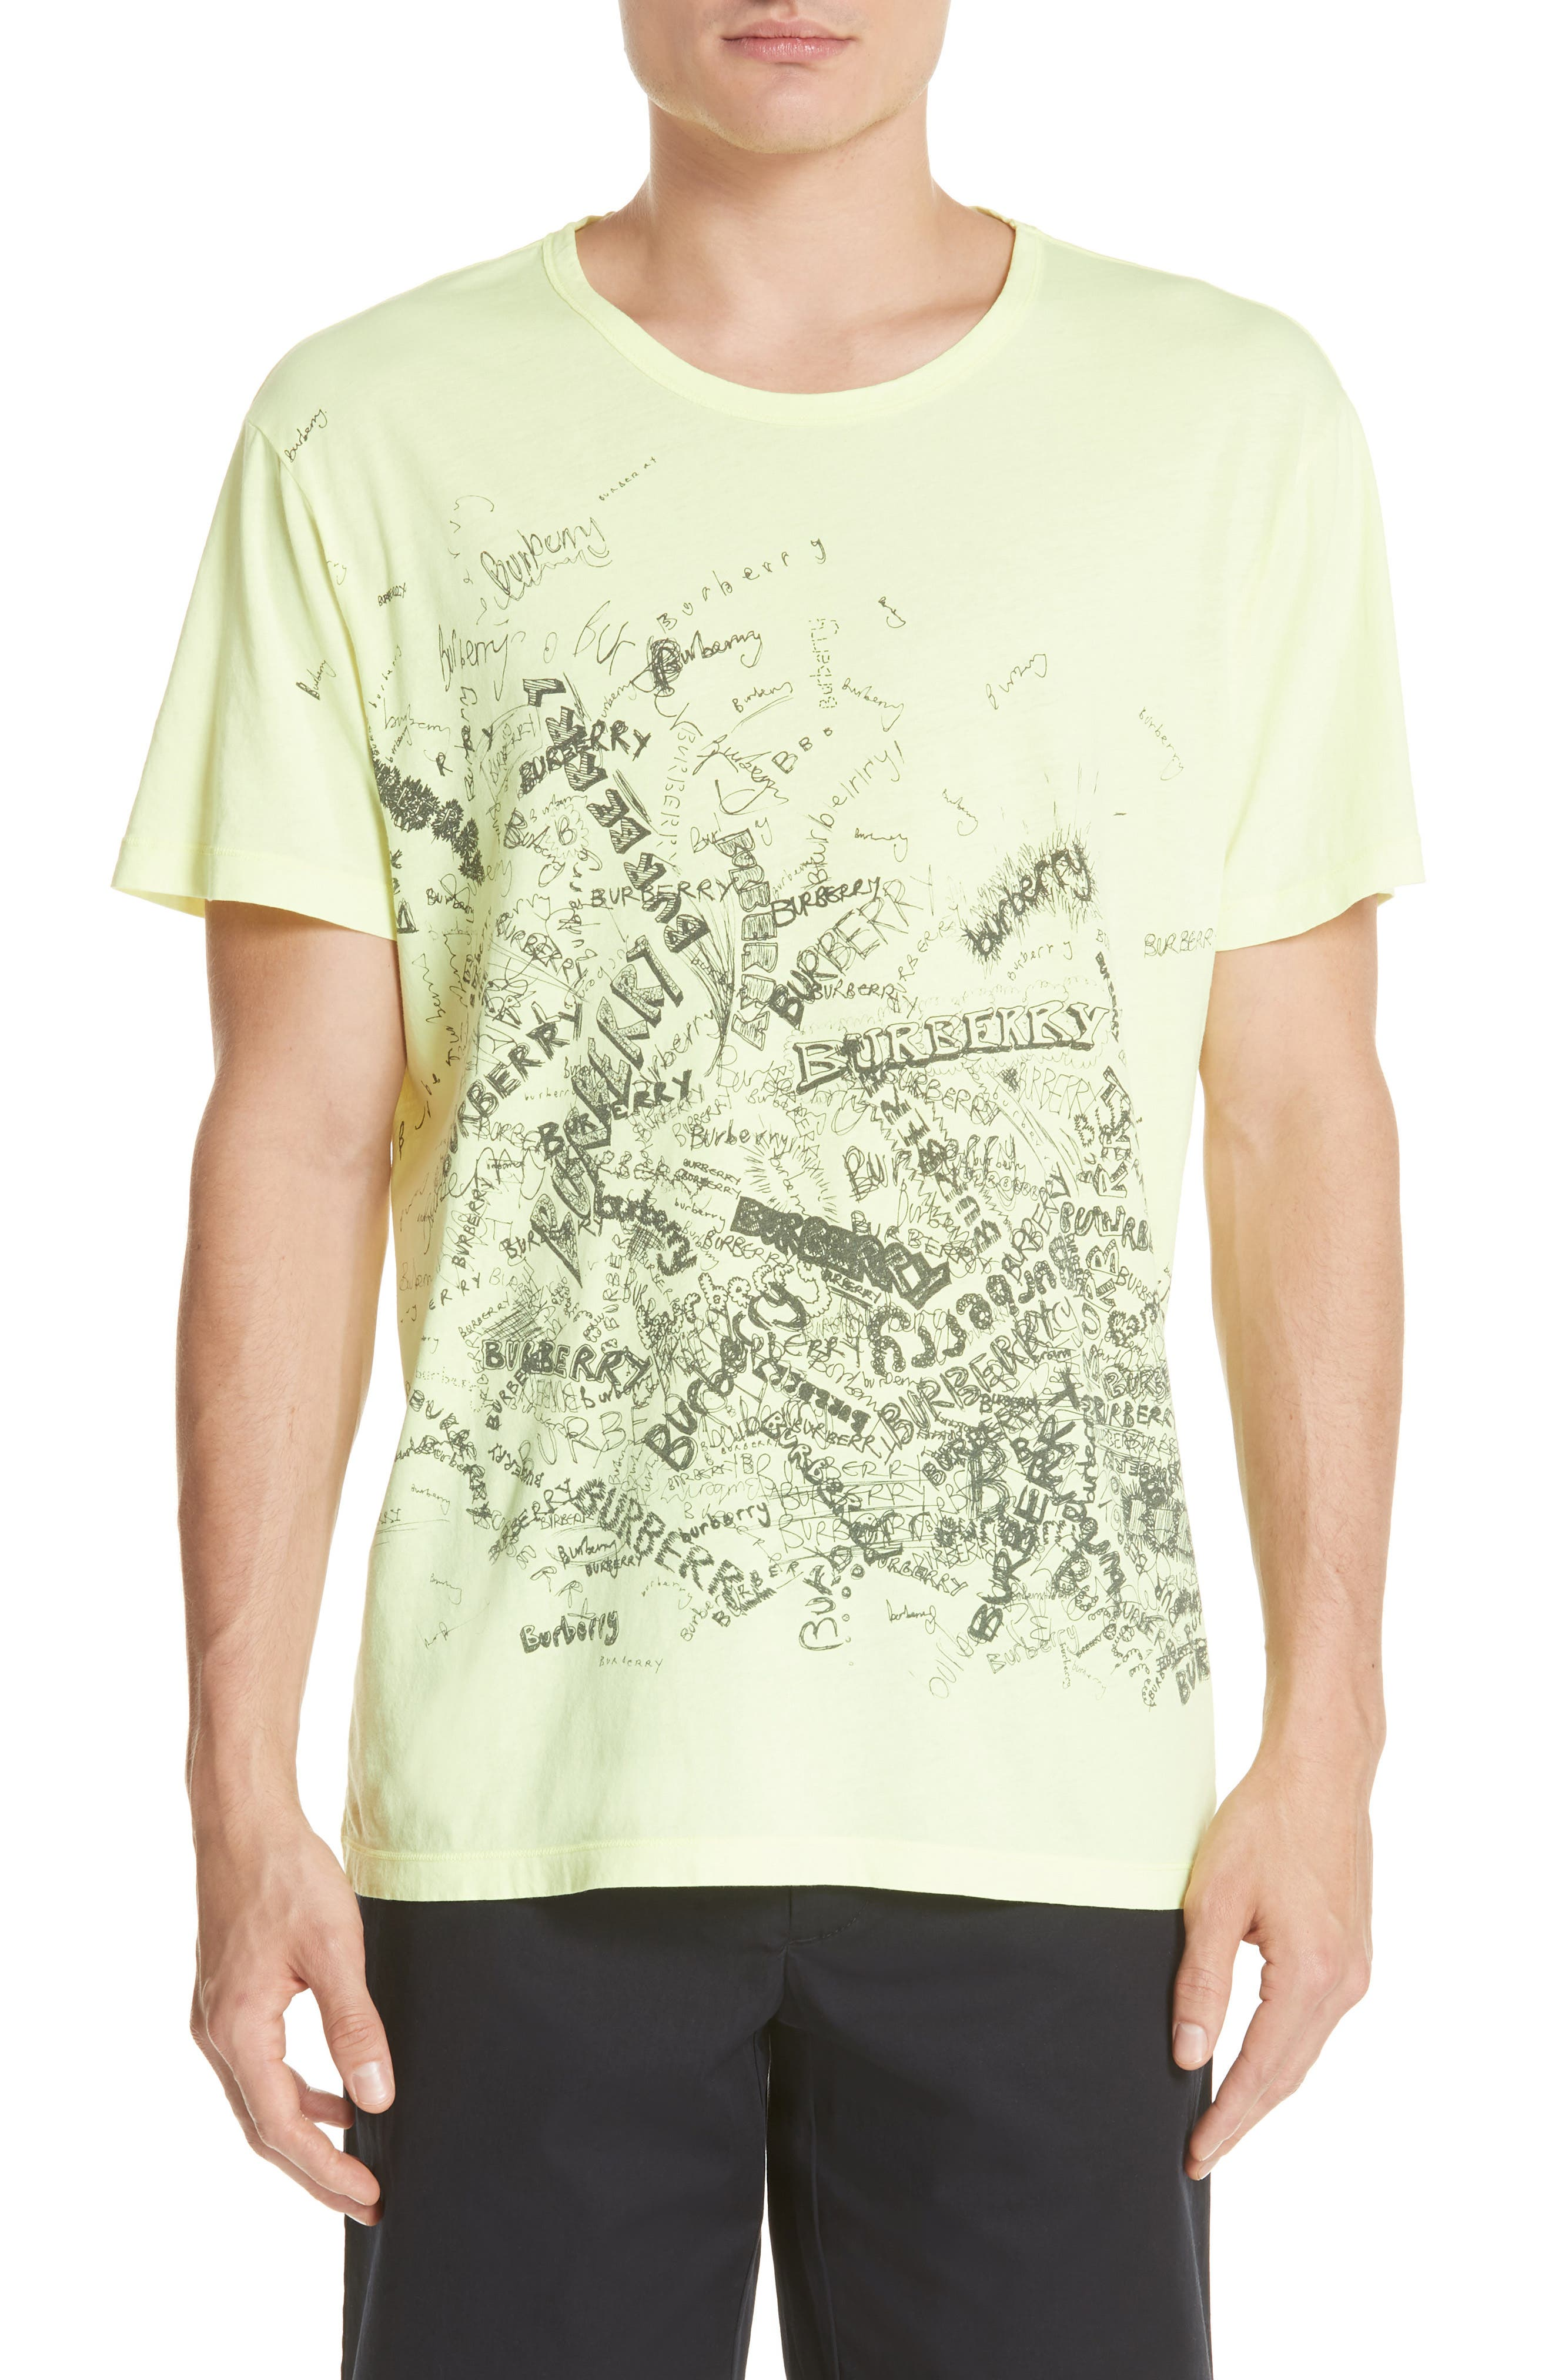 BURBERRY,                             Rydon Graphic T-Shirt,                             Main thumbnail 1, color,                             700